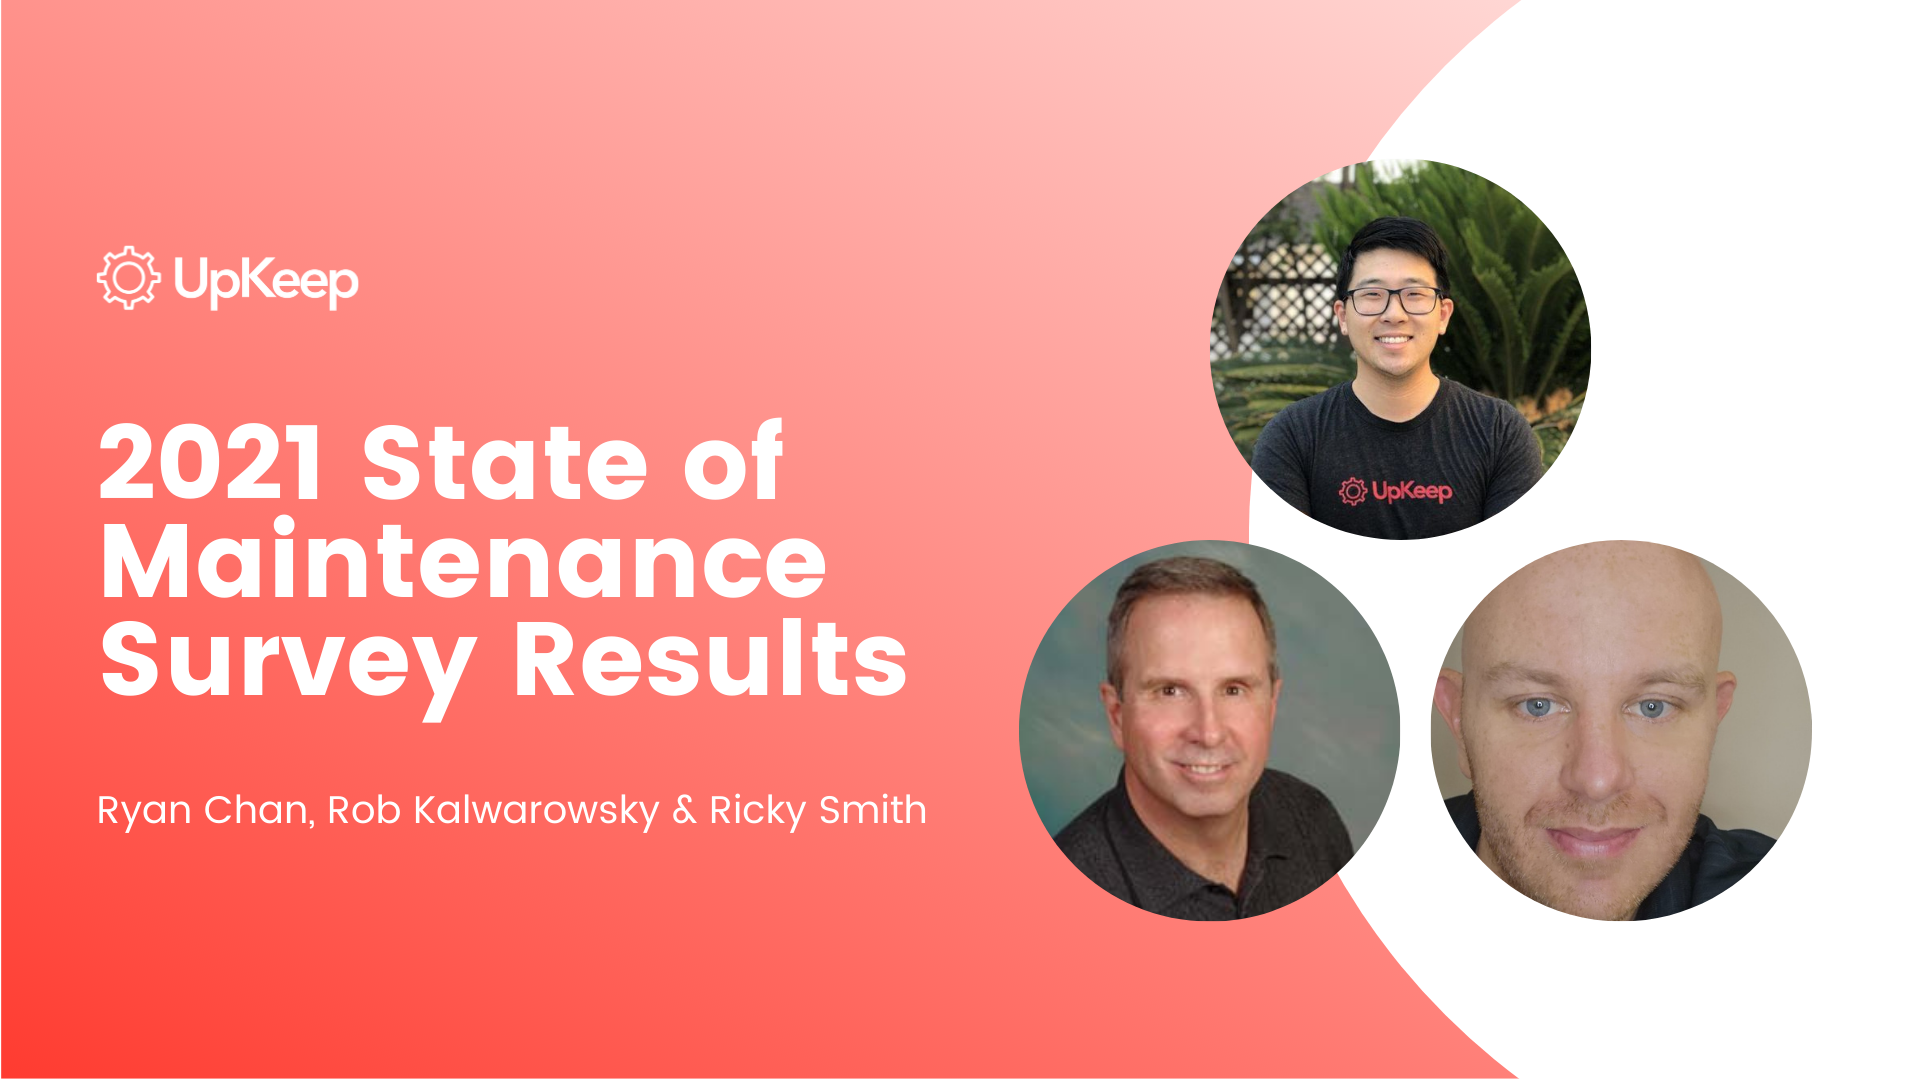 2021 State of Maintenance Survey Results